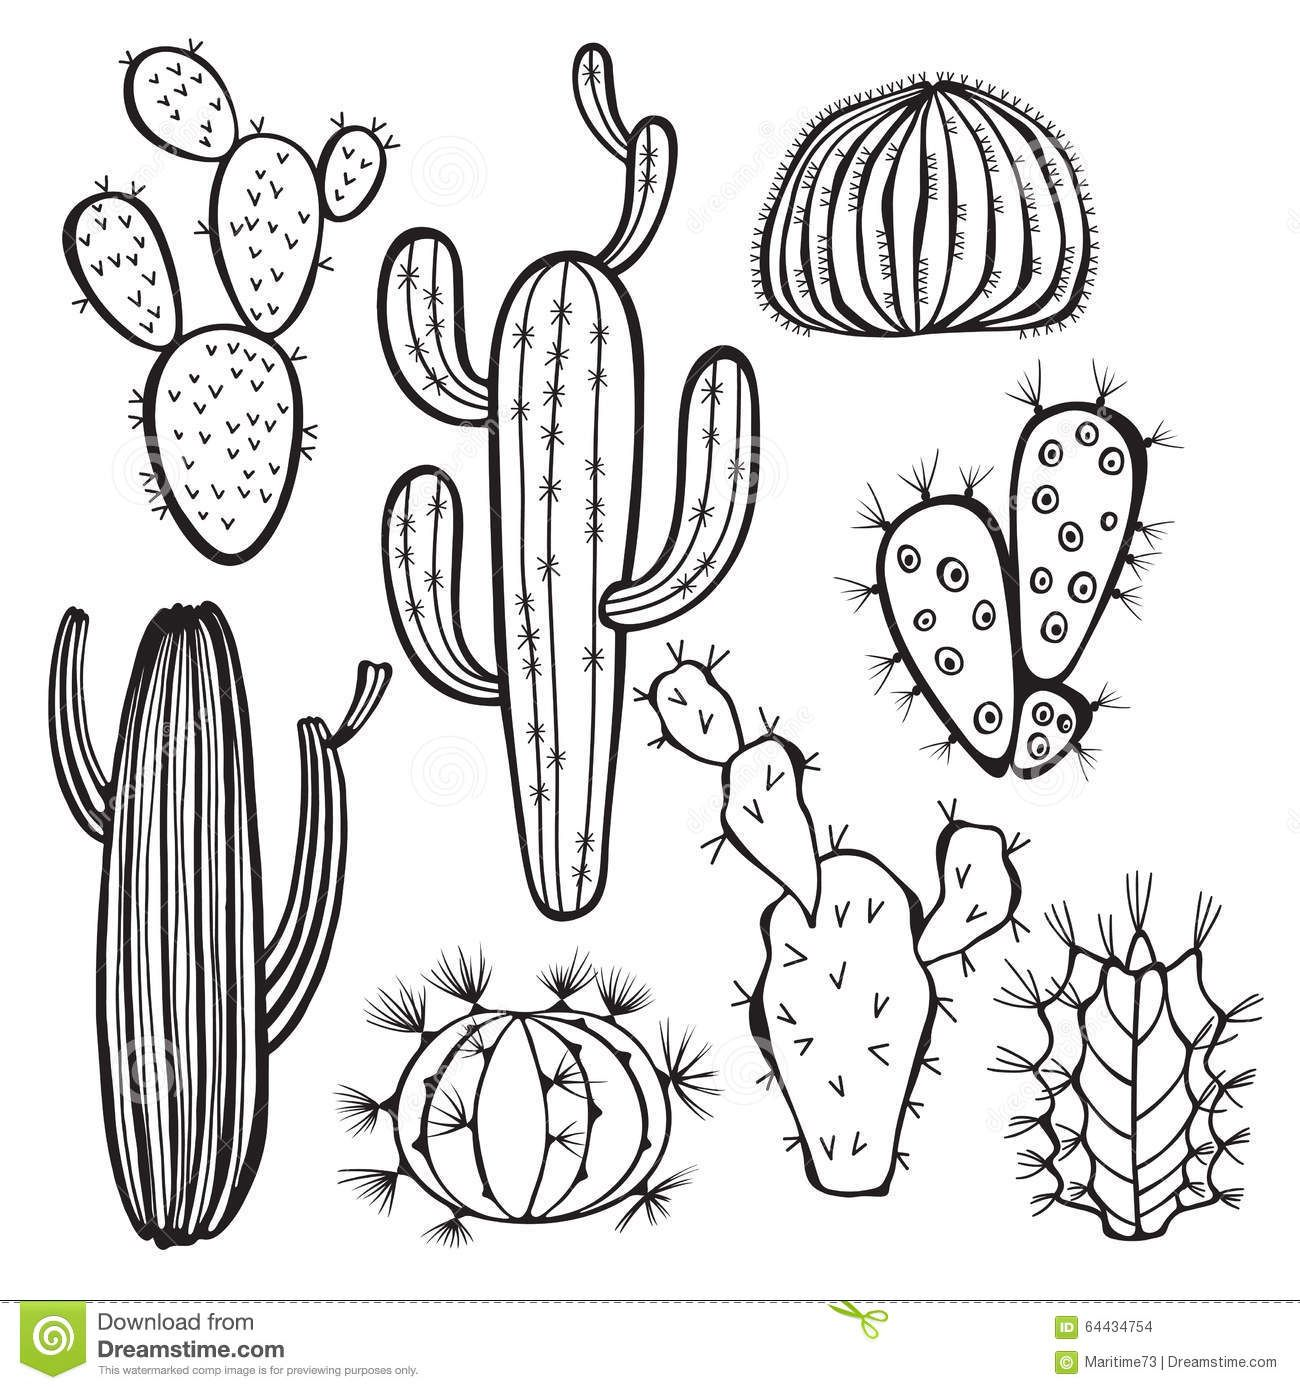 40+ Cactus Clipart Black And White Free